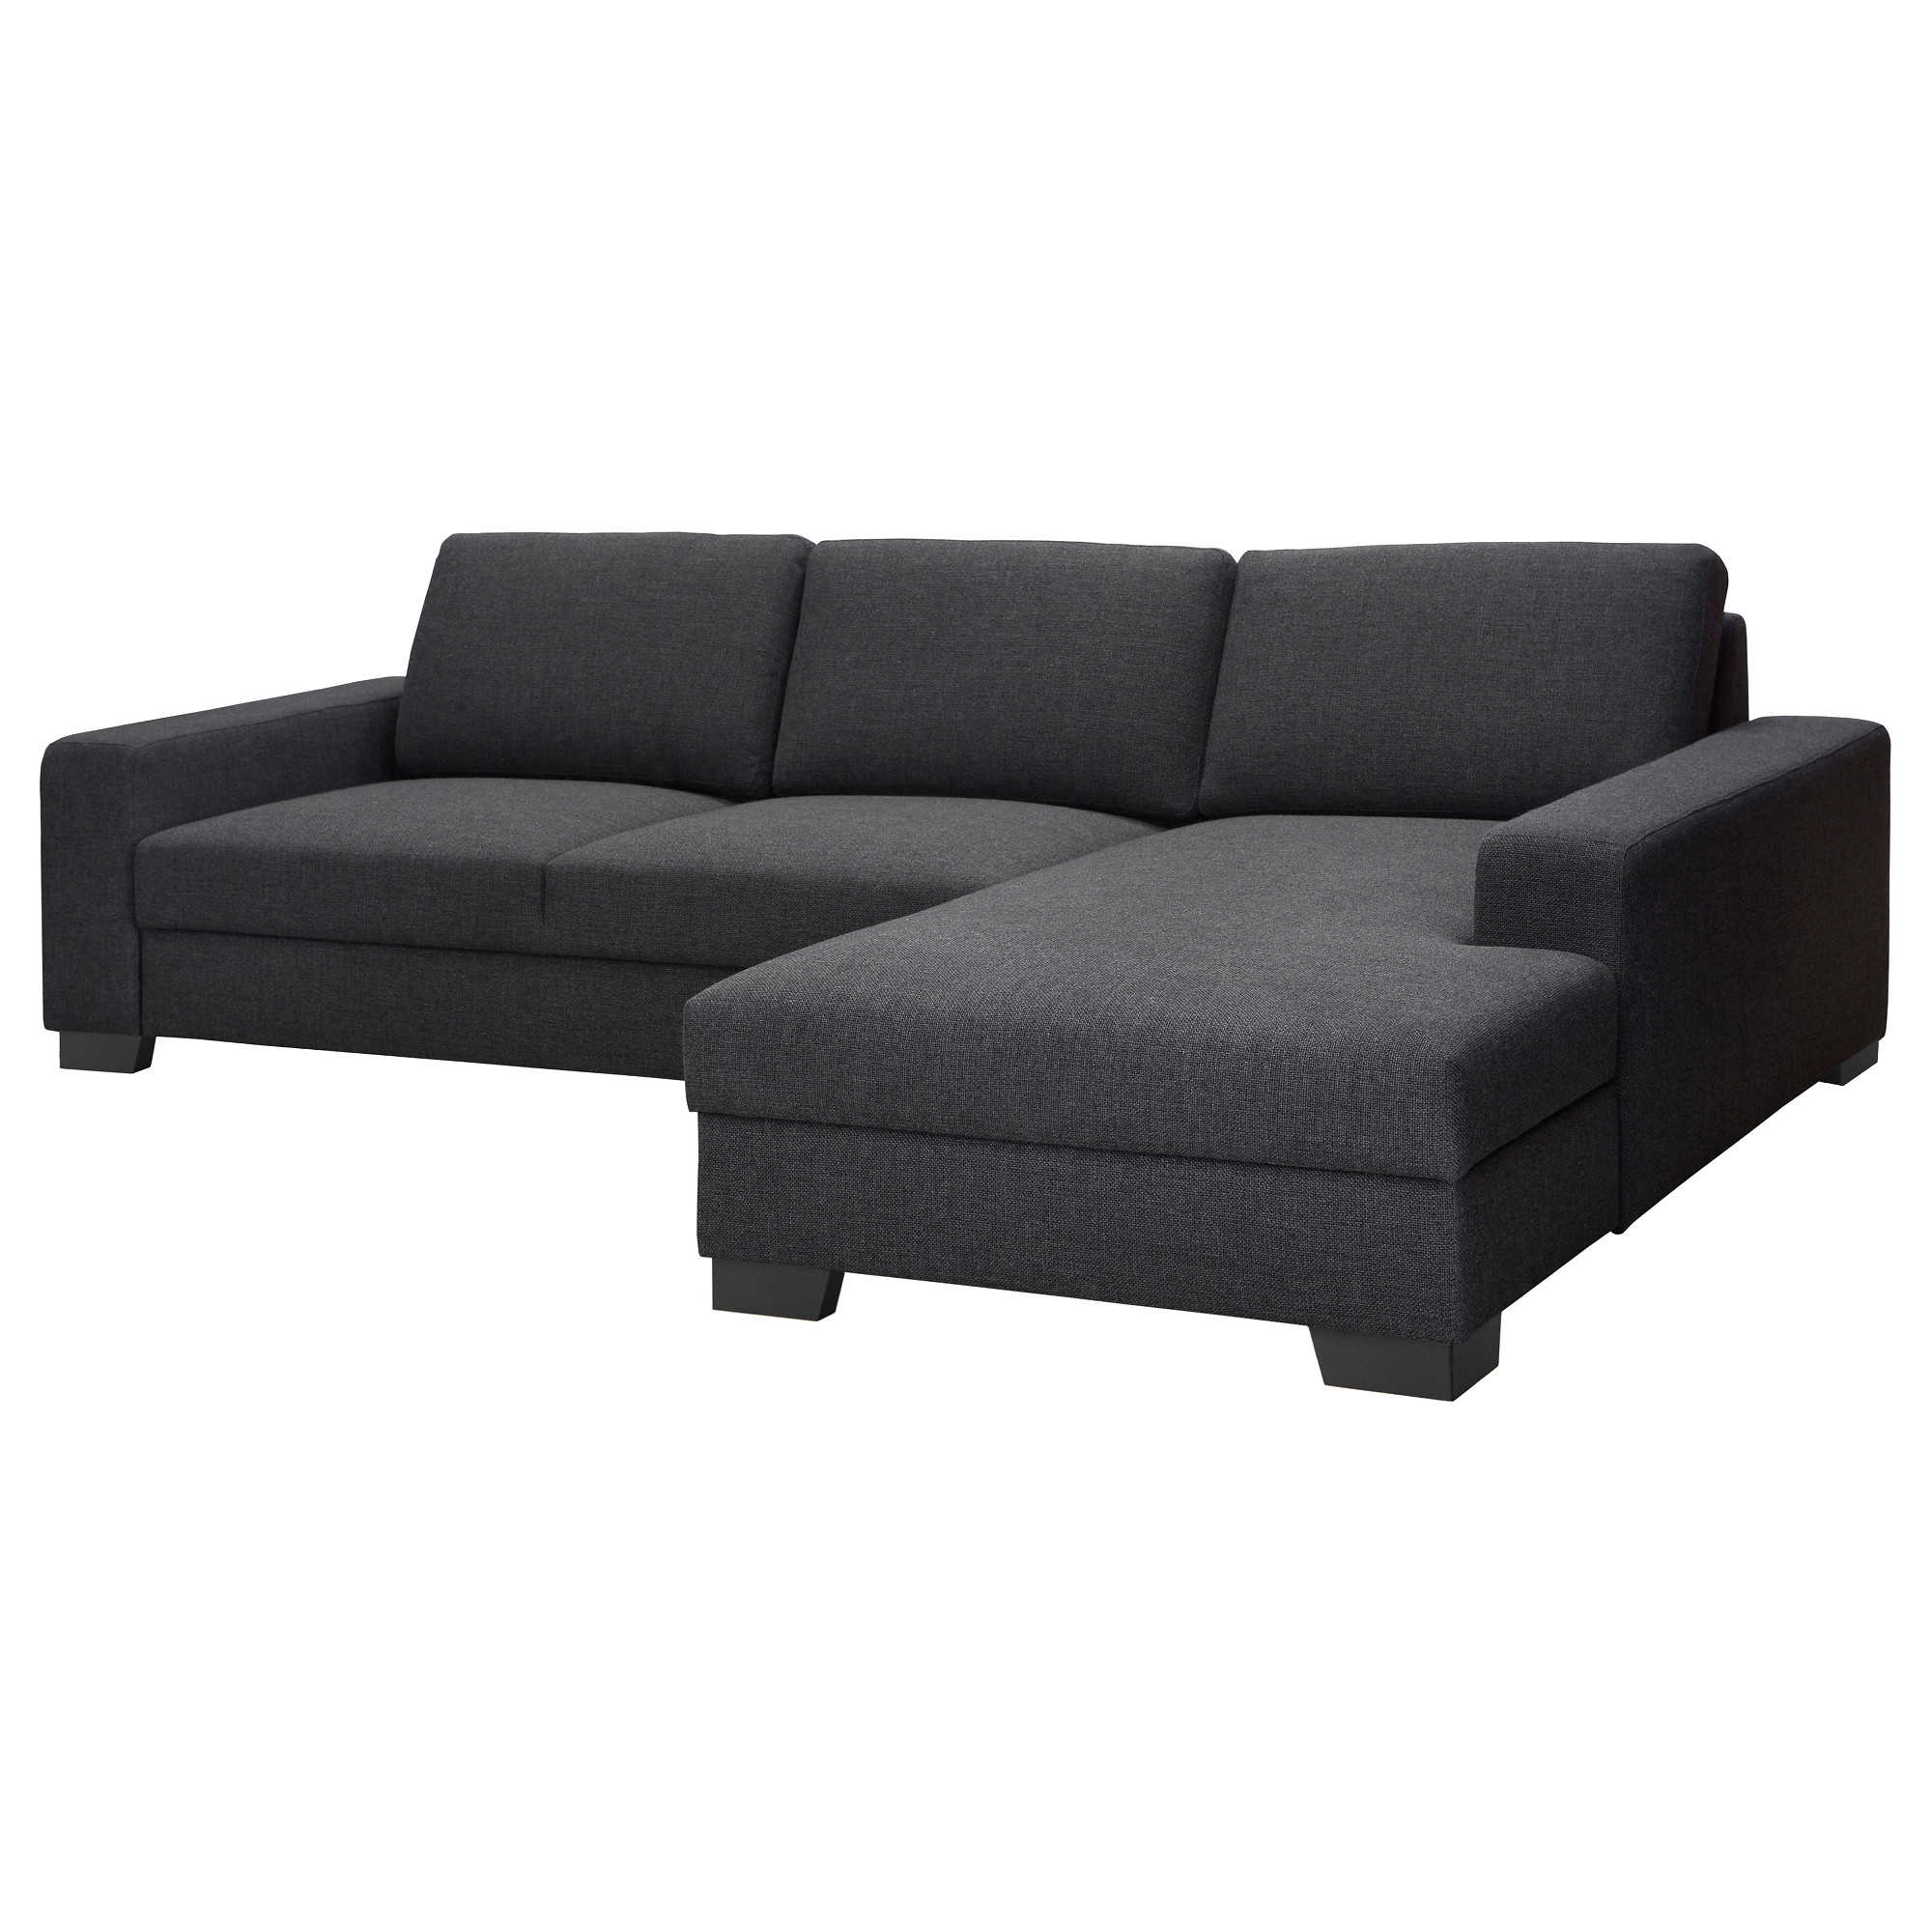 sofa 75 cm tief bestseller shop f r m bel und einrichtungen. Black Bedroom Furniture Sets. Home Design Ideas